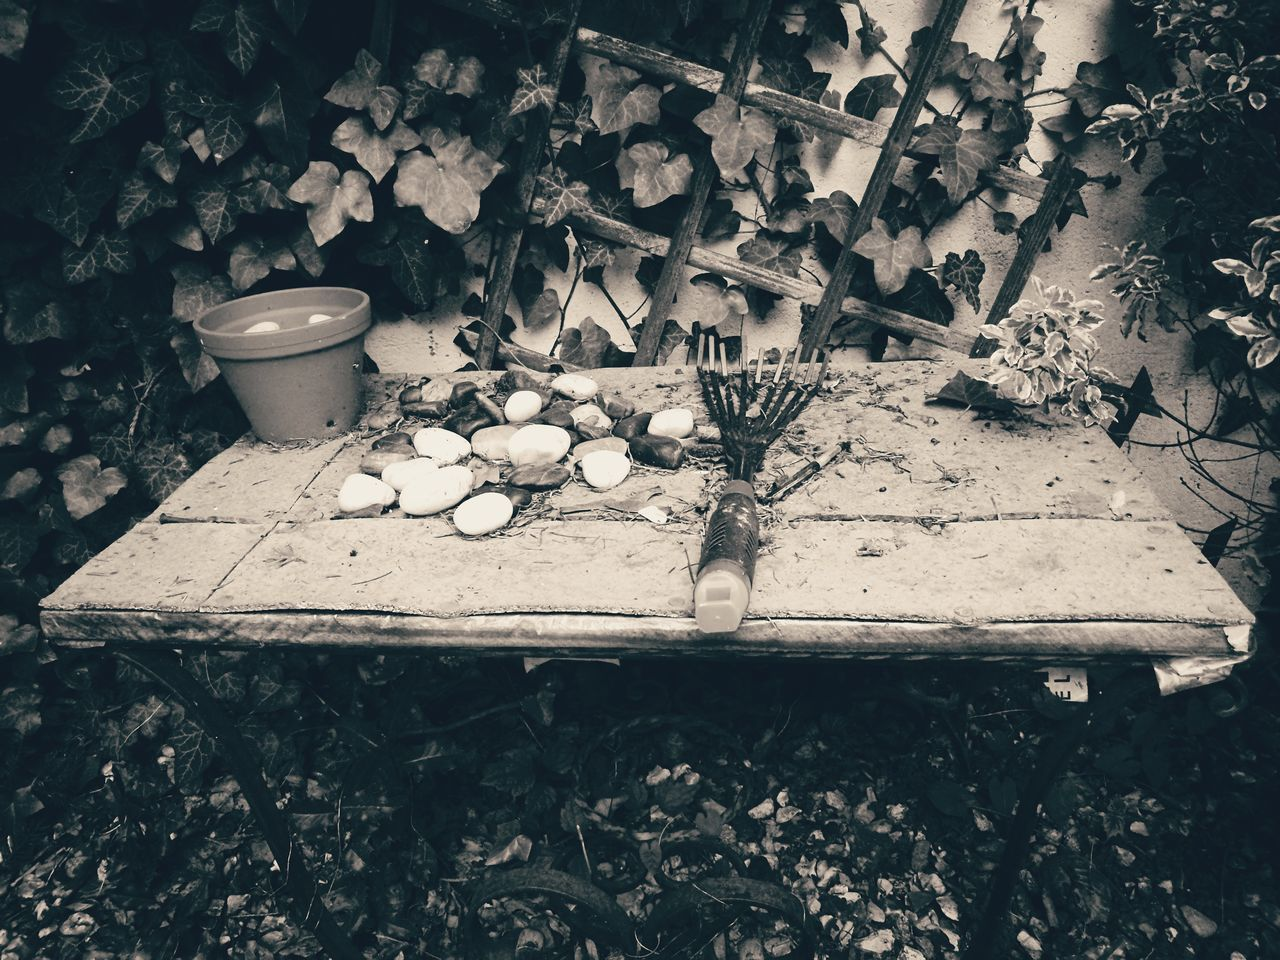 B&w B&W Collection B&W Photo Lifestyle B&WPhoto Monochrome Photograhy Monochrome Collection blackandwhite photography Black&white Garden Tools Plant No People Garden Photography Ivy Leaves Outdoors High Angle View Day Old Oldpicture Oldphoto Leaves 🍁 Stones Growth Leaf Effects In Nature France🇫🇷